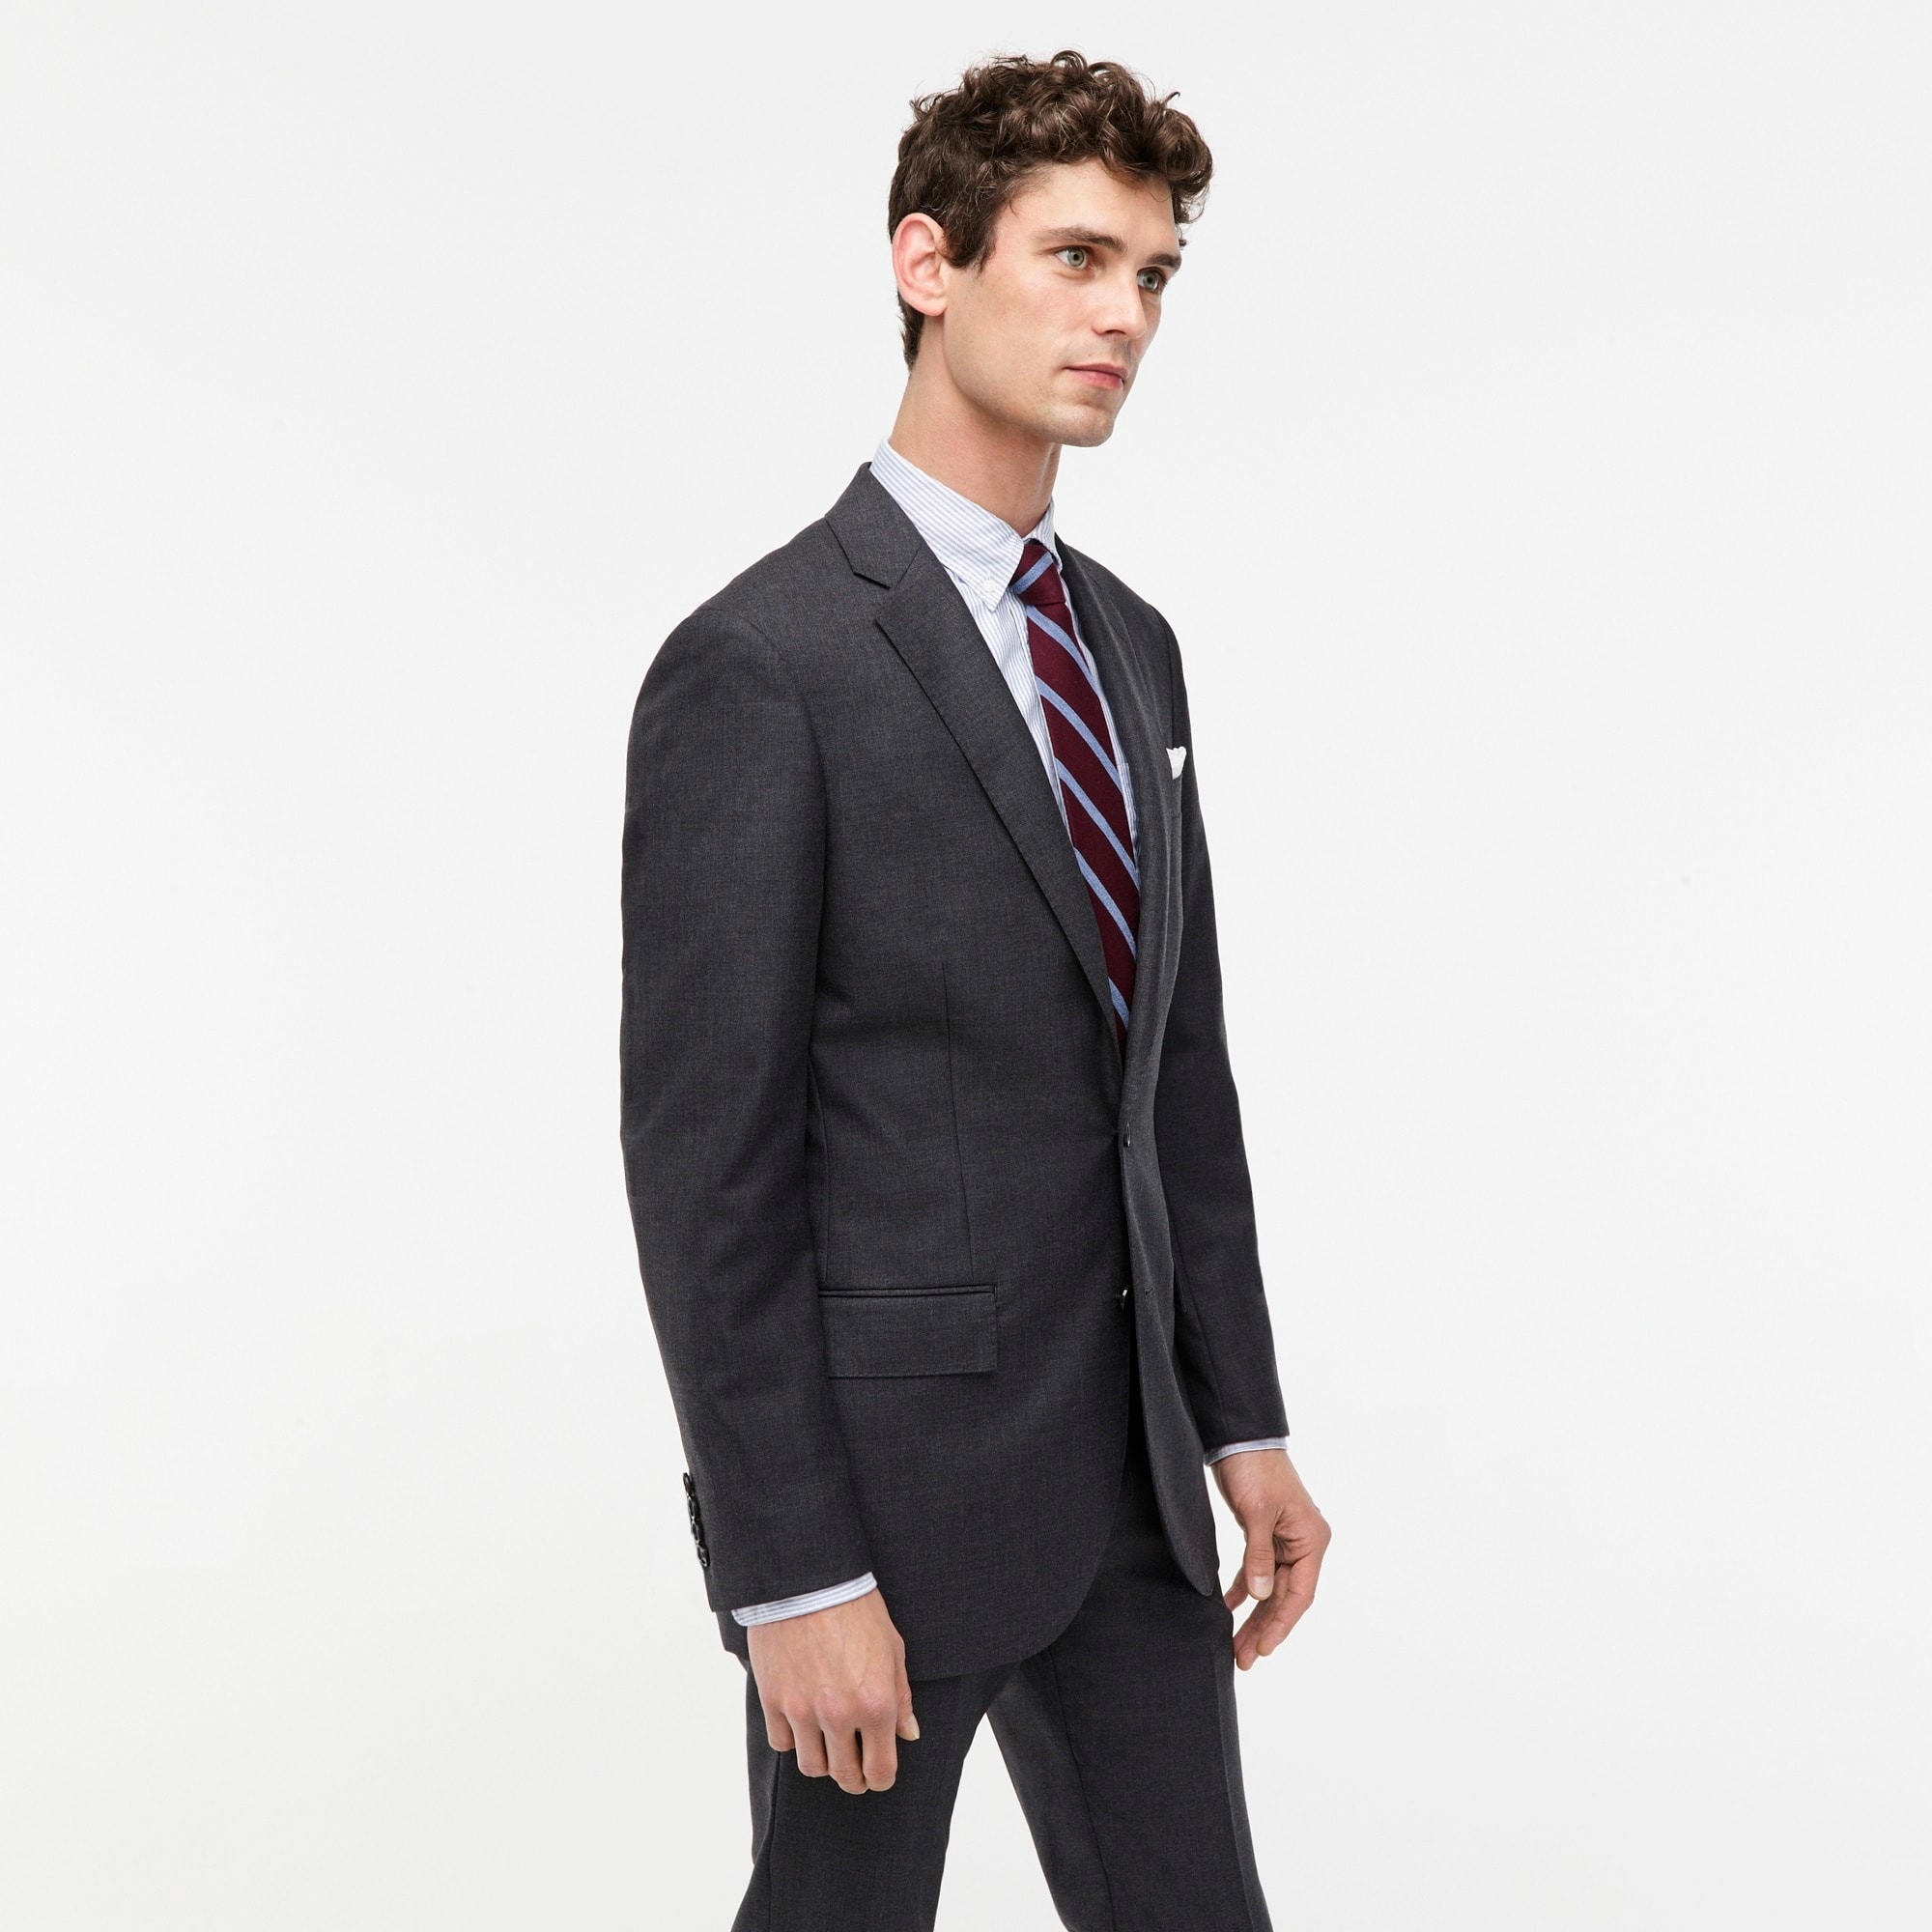 Image 3 for Ludlow Slim-fit suit jacket with double vent in charcoal American Wool